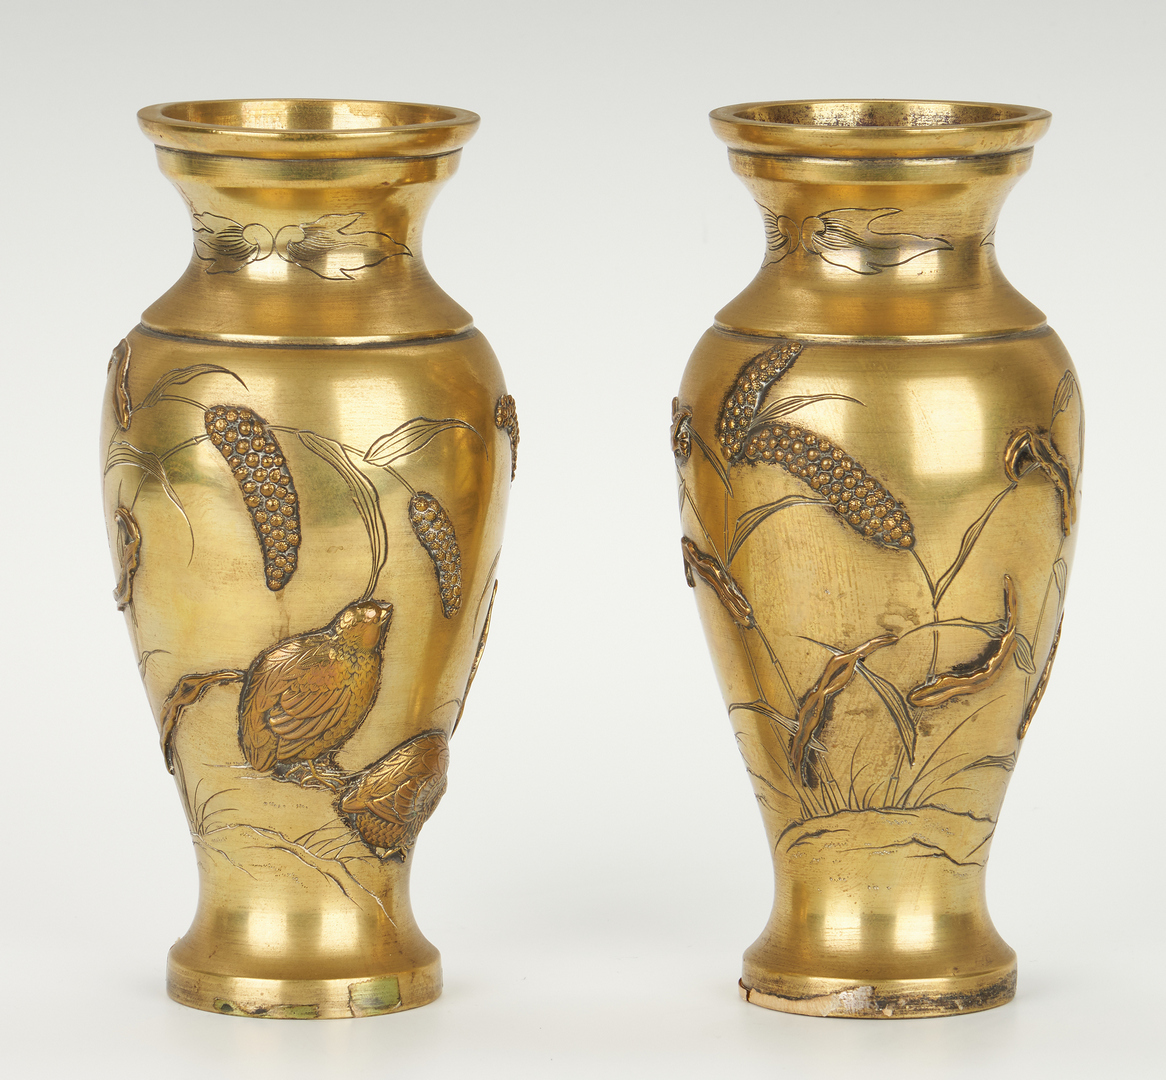 Lot 11: Pair of Asian Bronze Vases and Footed Bowl